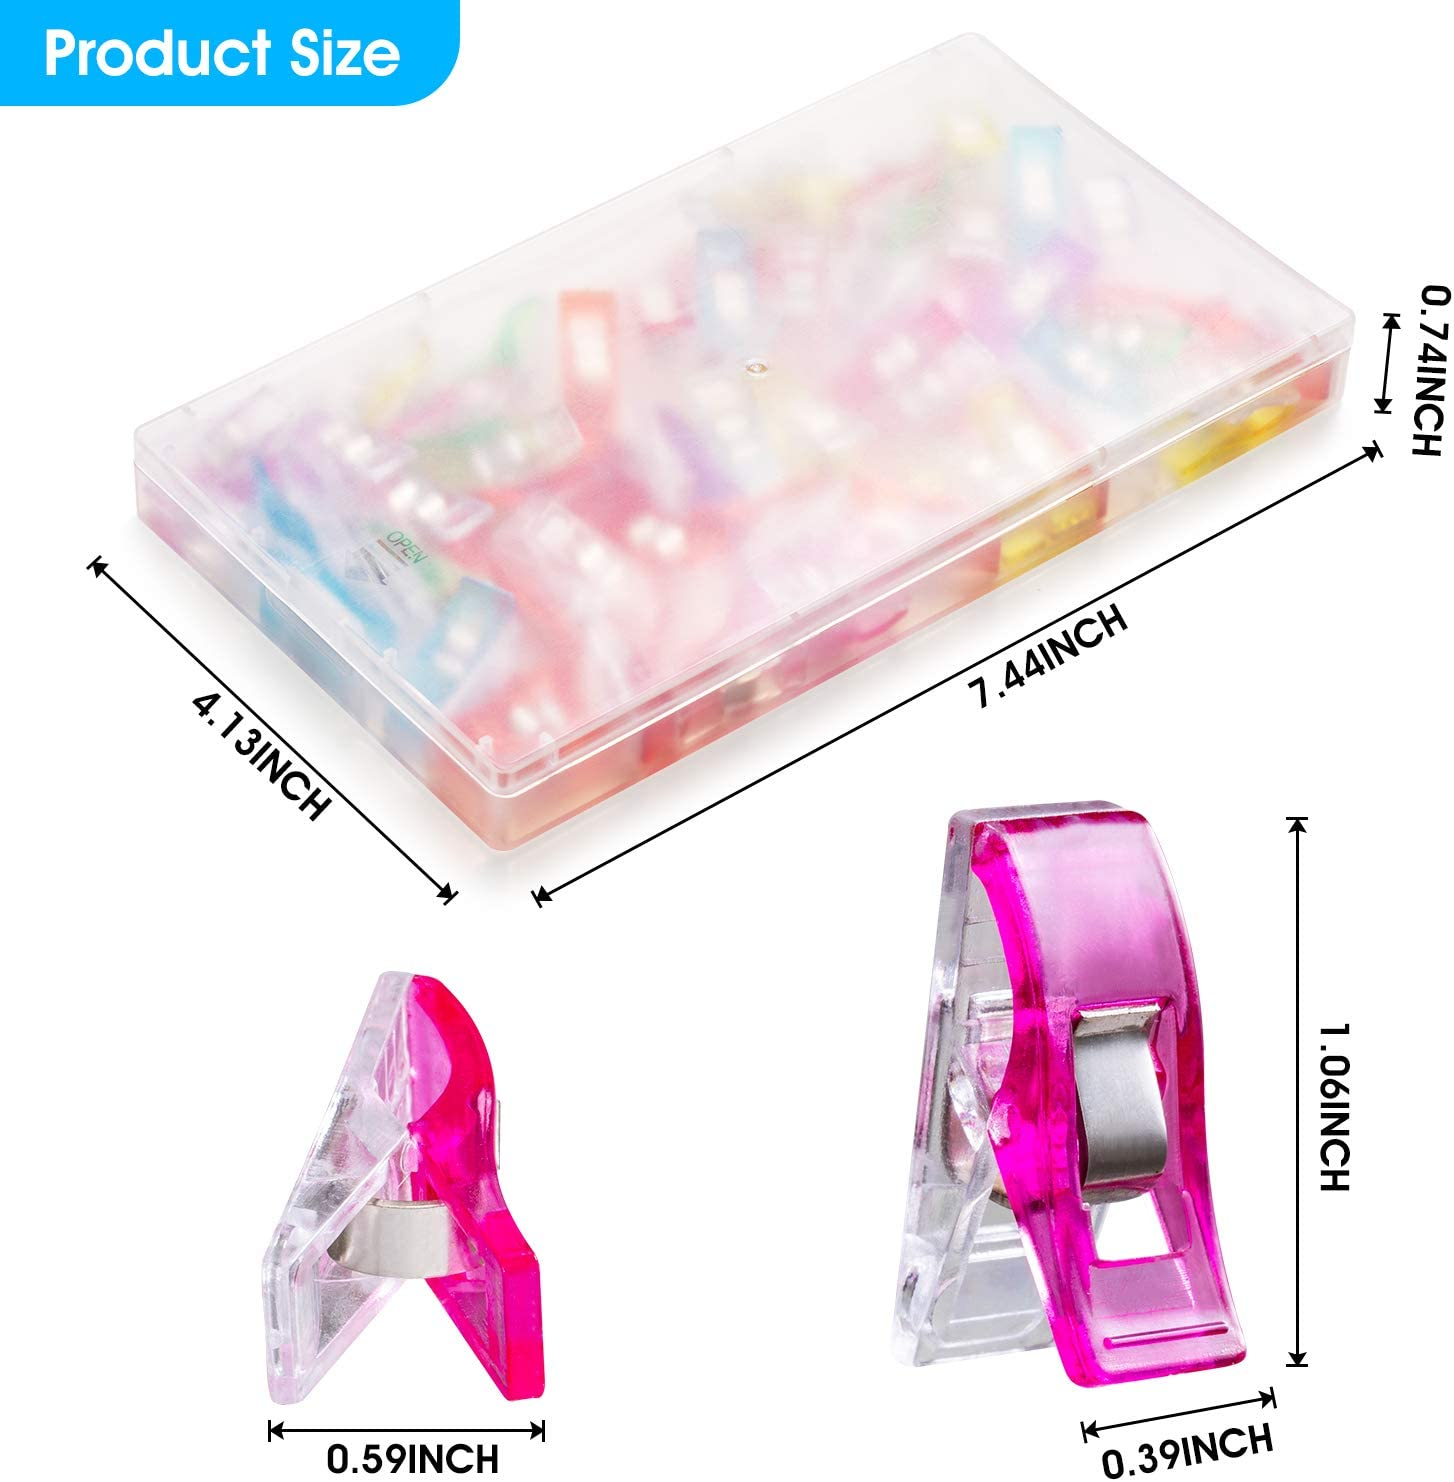 Wth a Square Box 50 PCS Multipurpose Sewing Clips for Fabric Colorful Plastic Wander Clips for Sewing Quilting Crafting Knitting